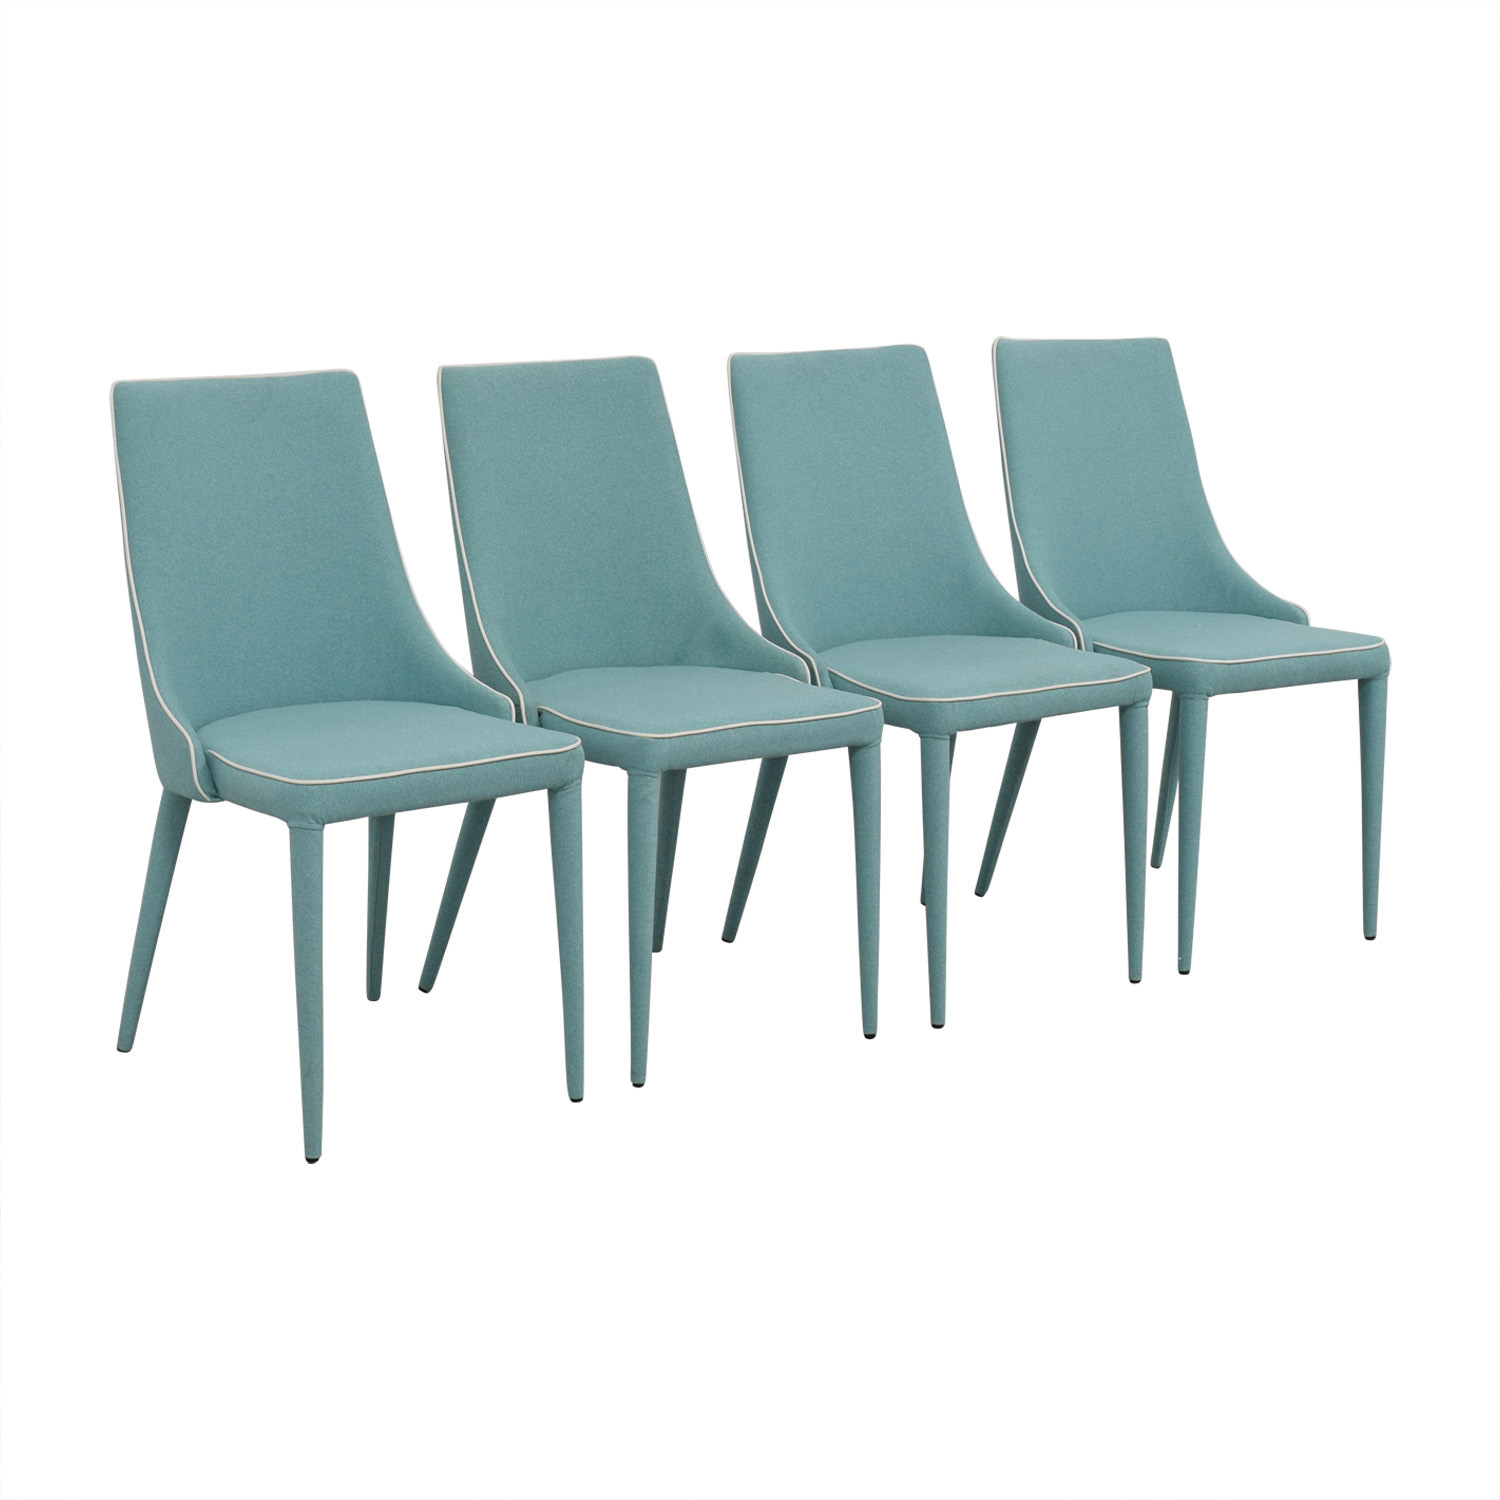 Inmod Inmod Turquoise Fabric Chair